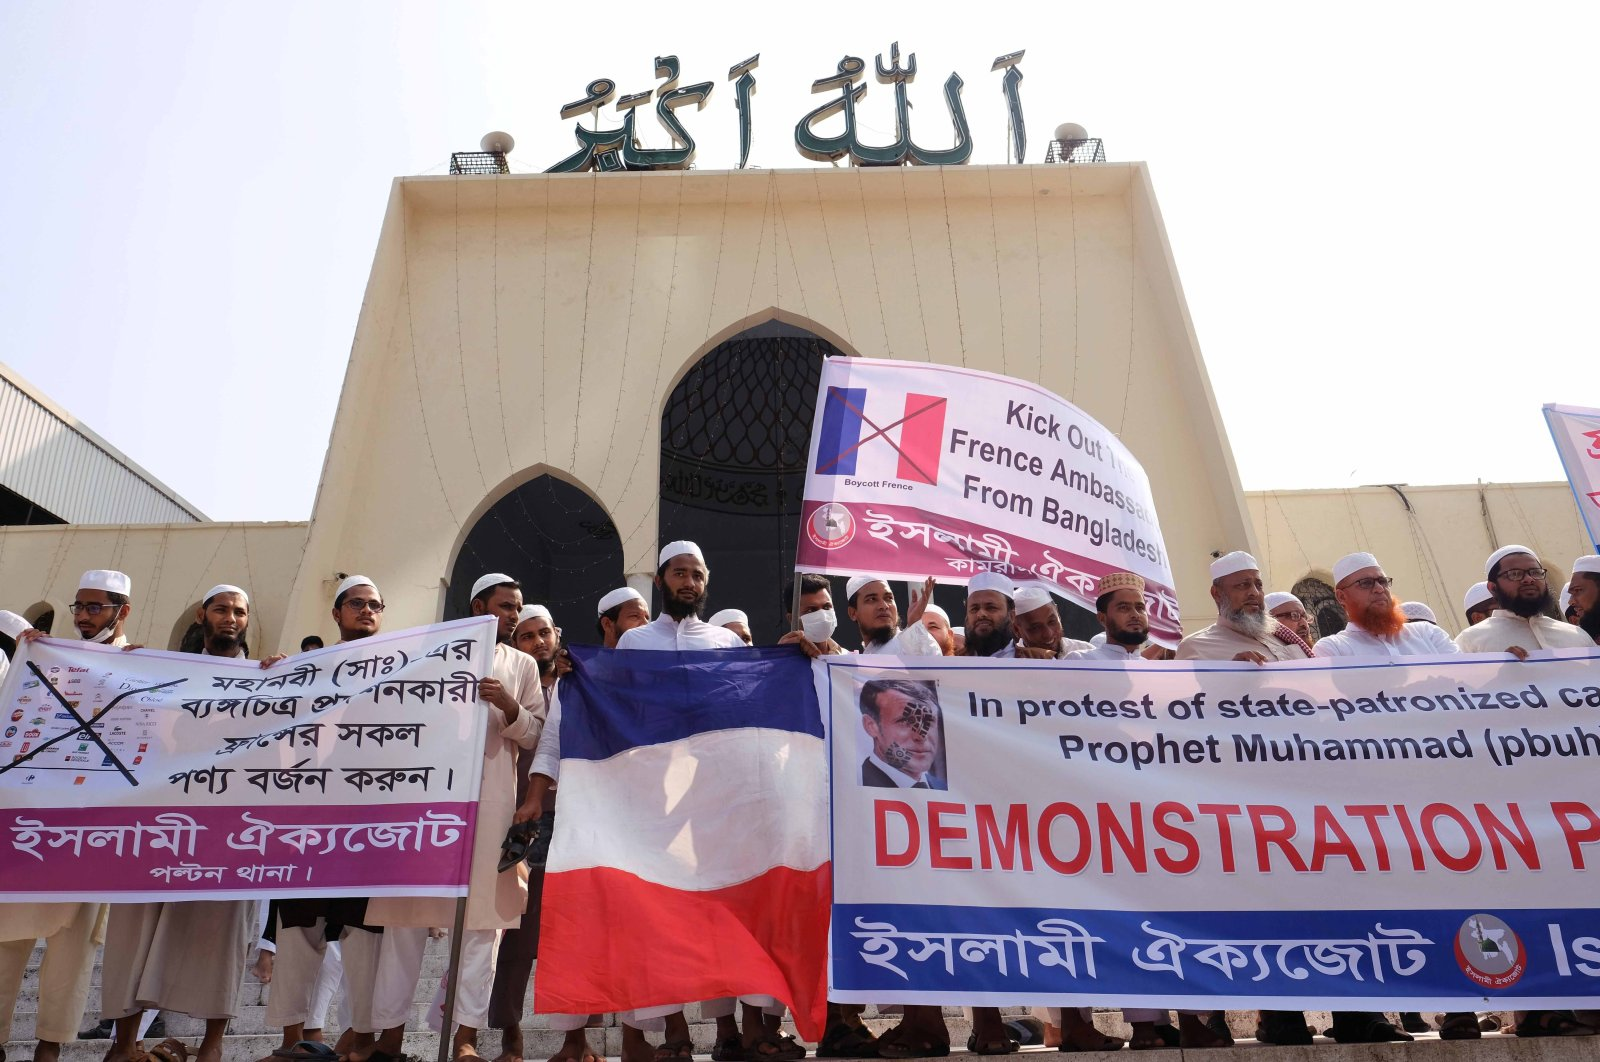 Muslim people protest against the publishing of caricatures of the Prophet Muhammad they deem blasphemous, in Dhaka, Bangladesh, Oct. 28, 2020. (AP Photo)